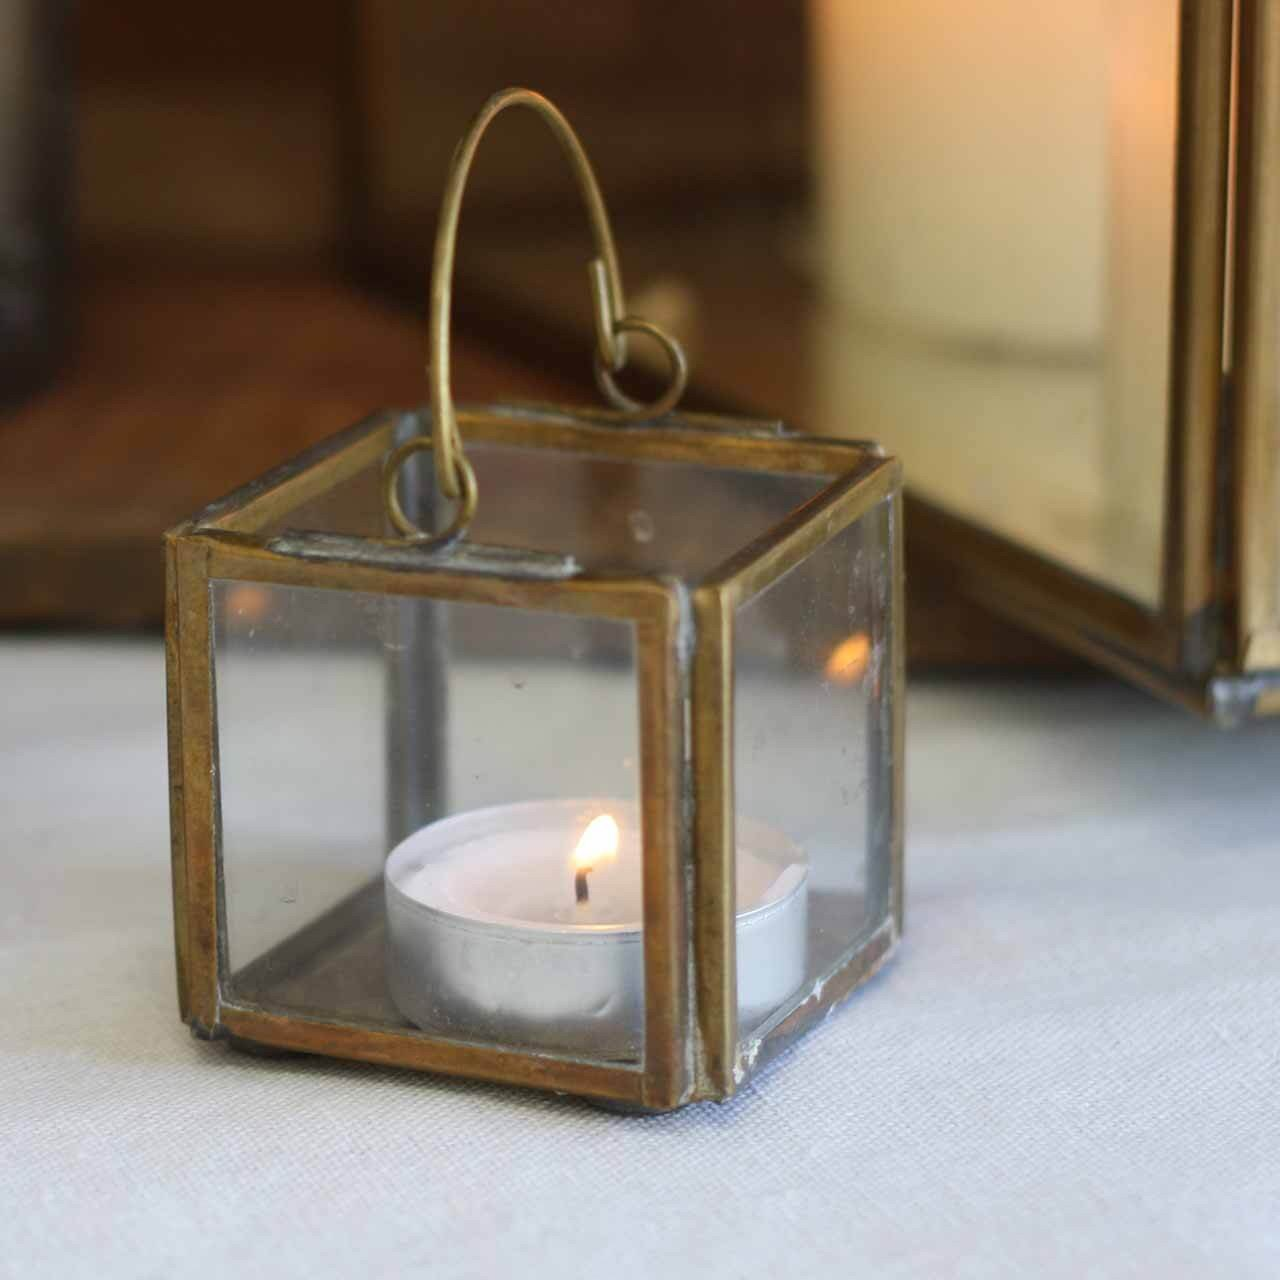 Small_square_brass_tea_light_holder_with_handle_2.jpg